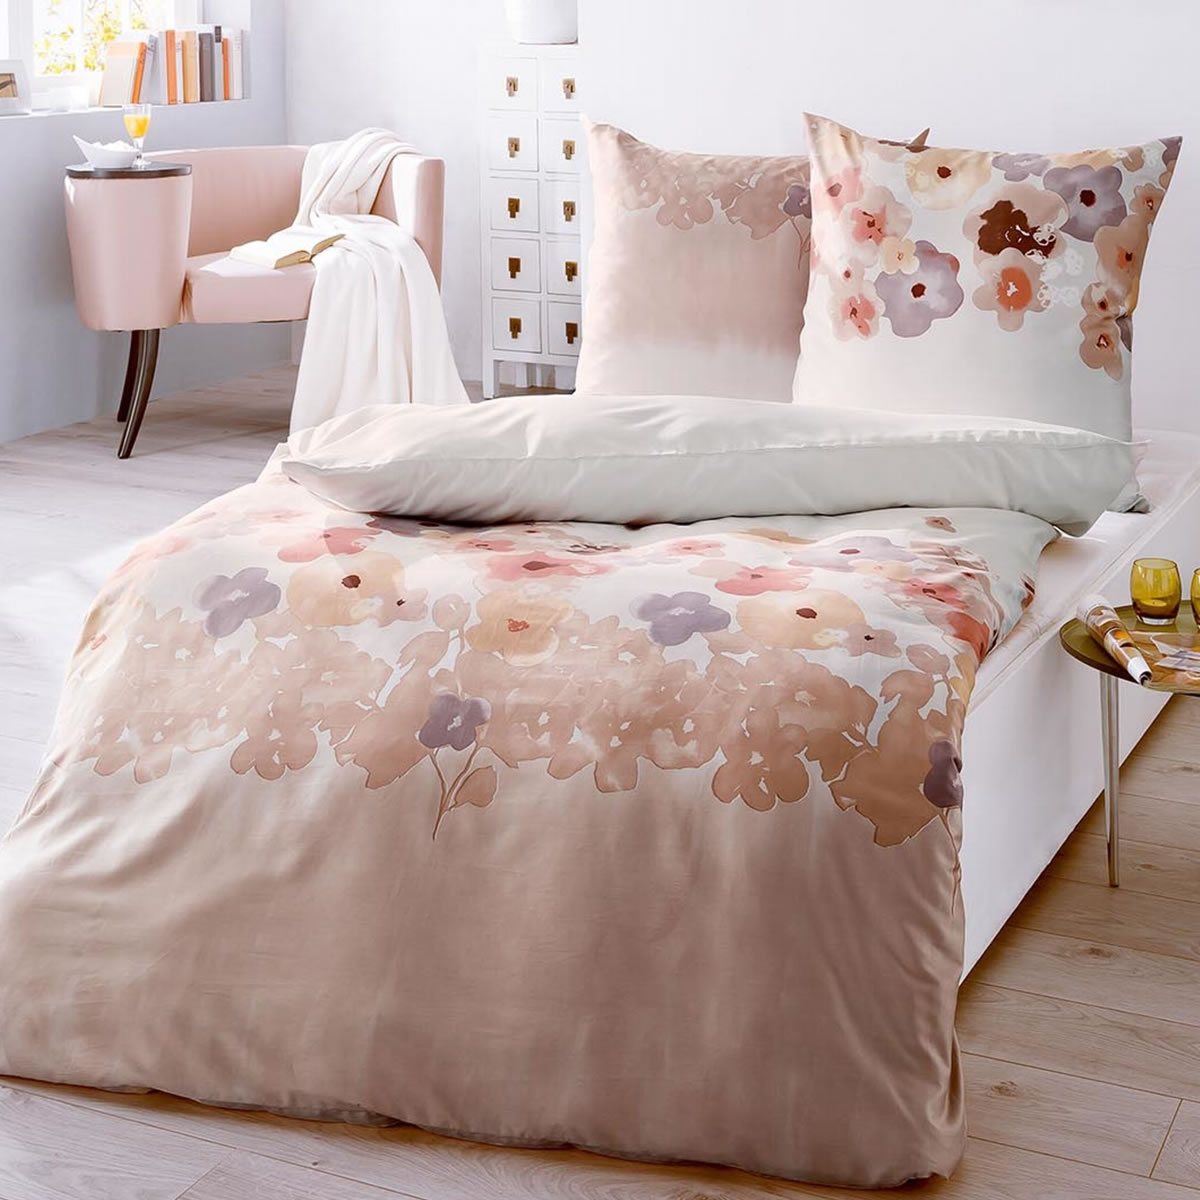 kaeppel biber bettw sche 155x220 cm design 51456 pompom creme blumen. Black Bedroom Furniture Sets. Home Design Ideas